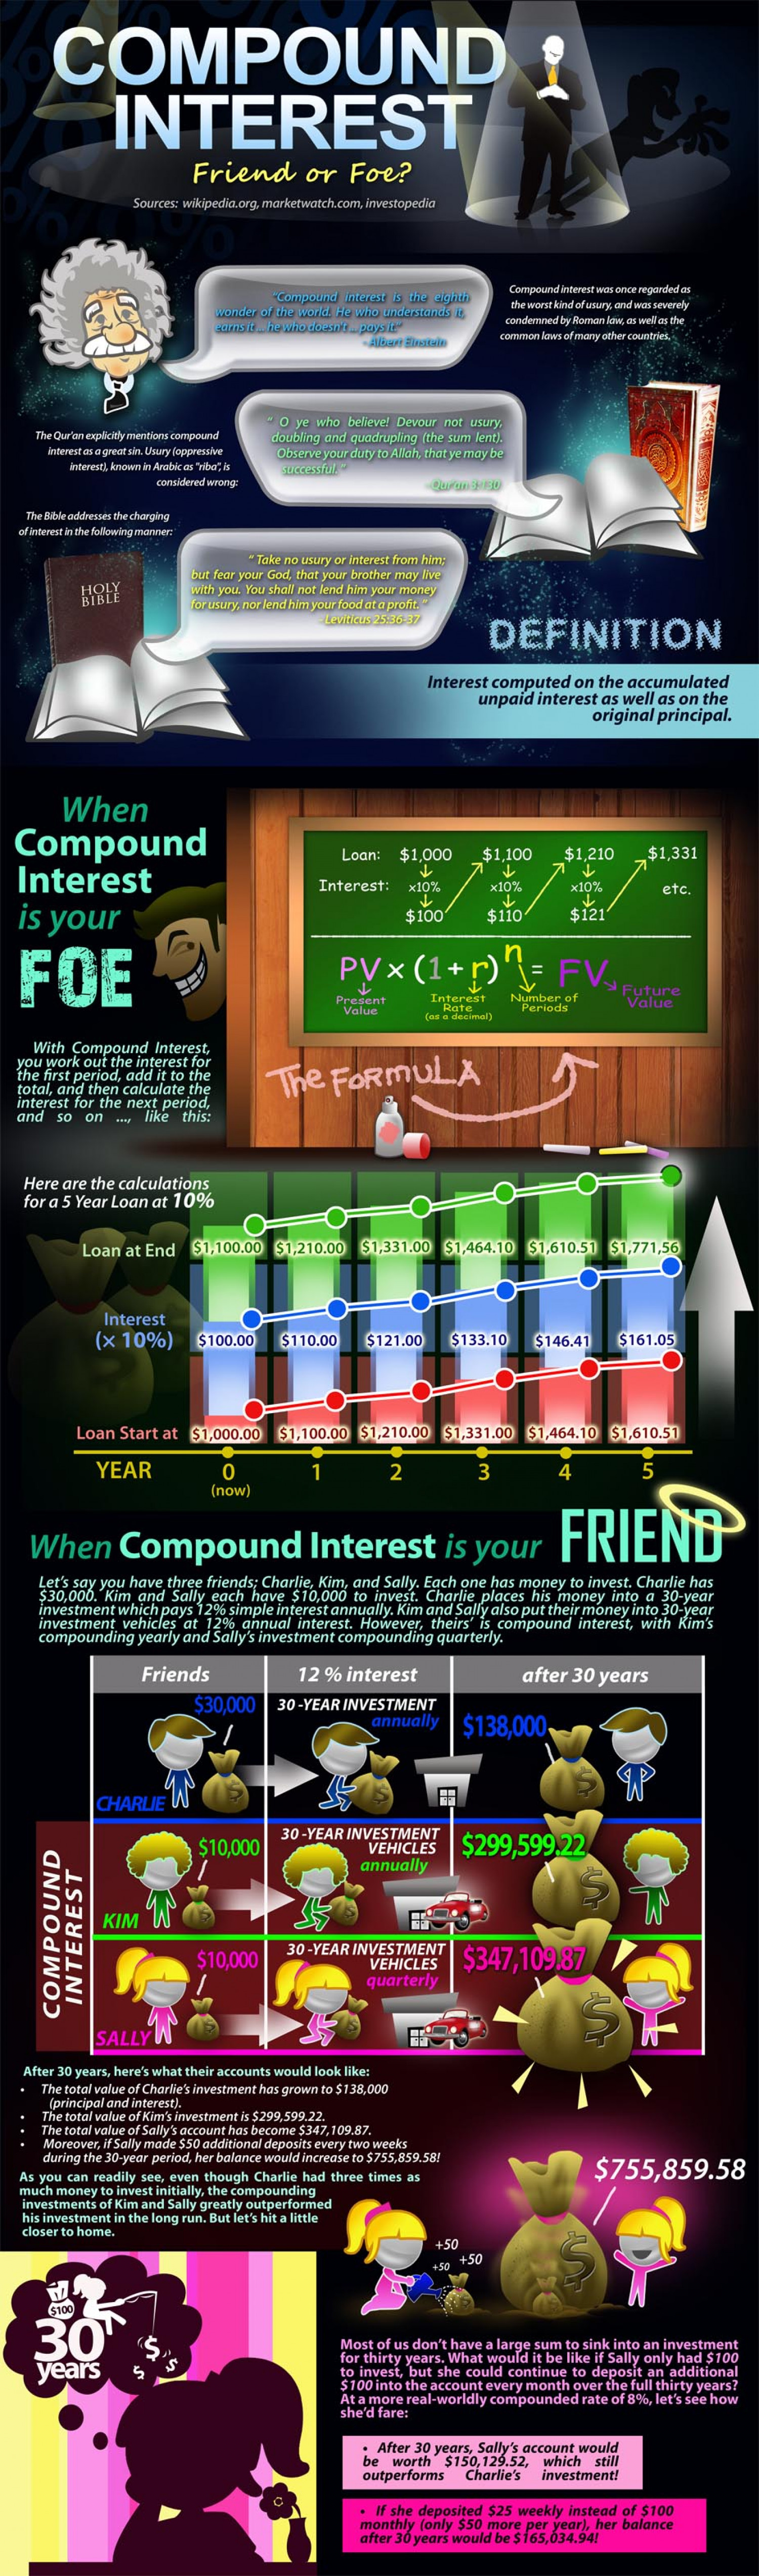 Compound Interest - Friend or Foe? Infographic